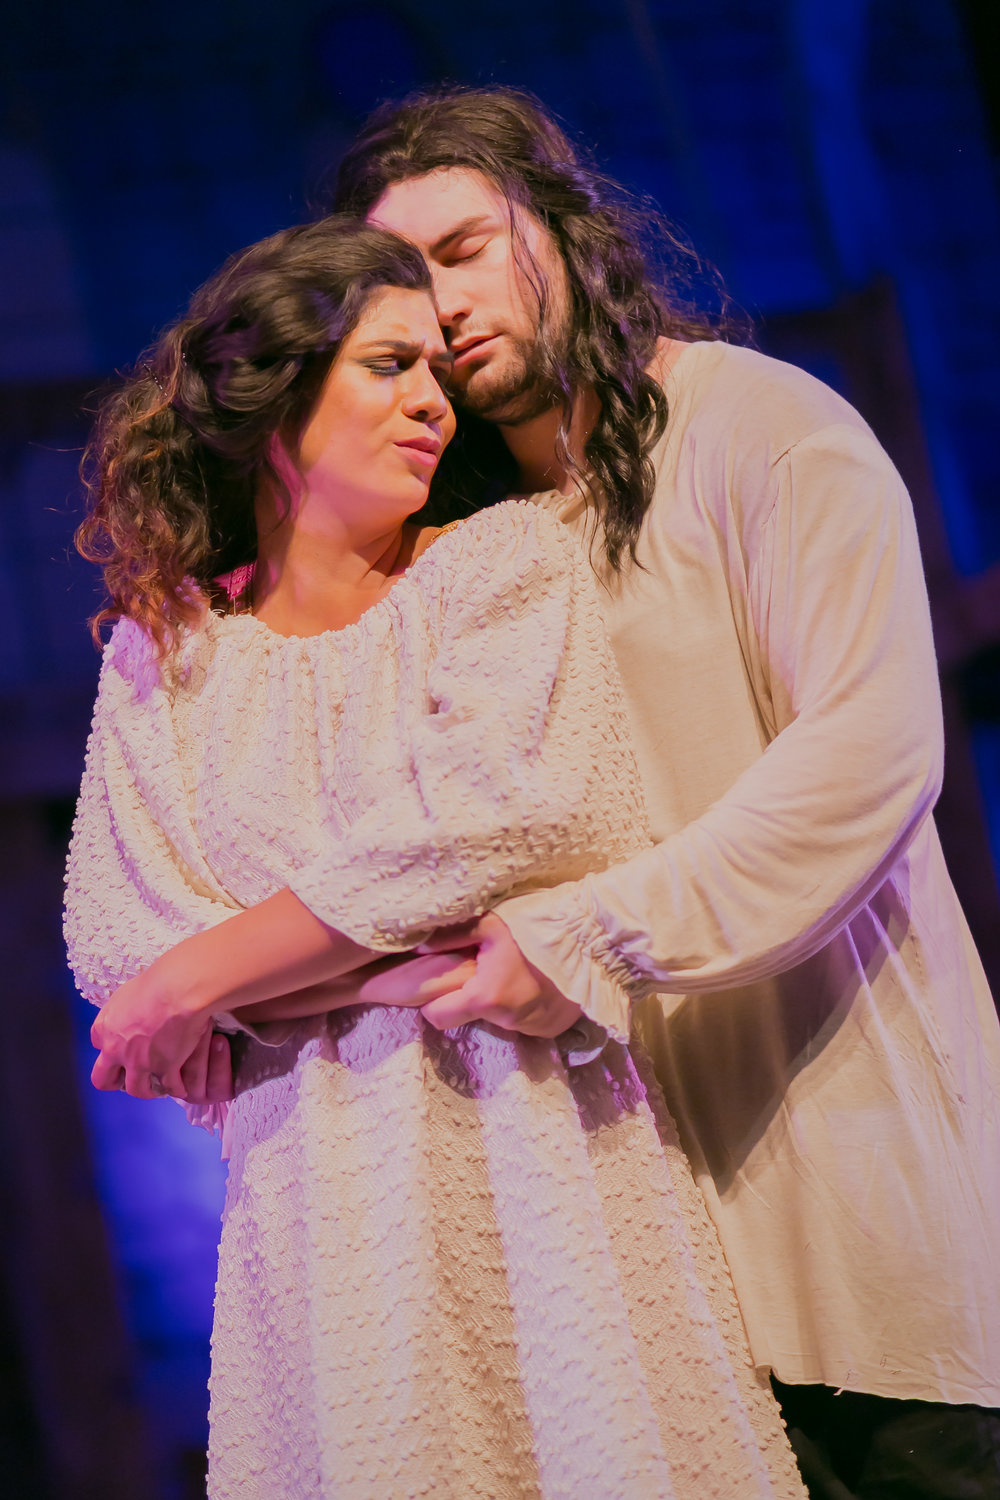 Hunchback.Playhouse.danscape.DressRun -1031.jpg